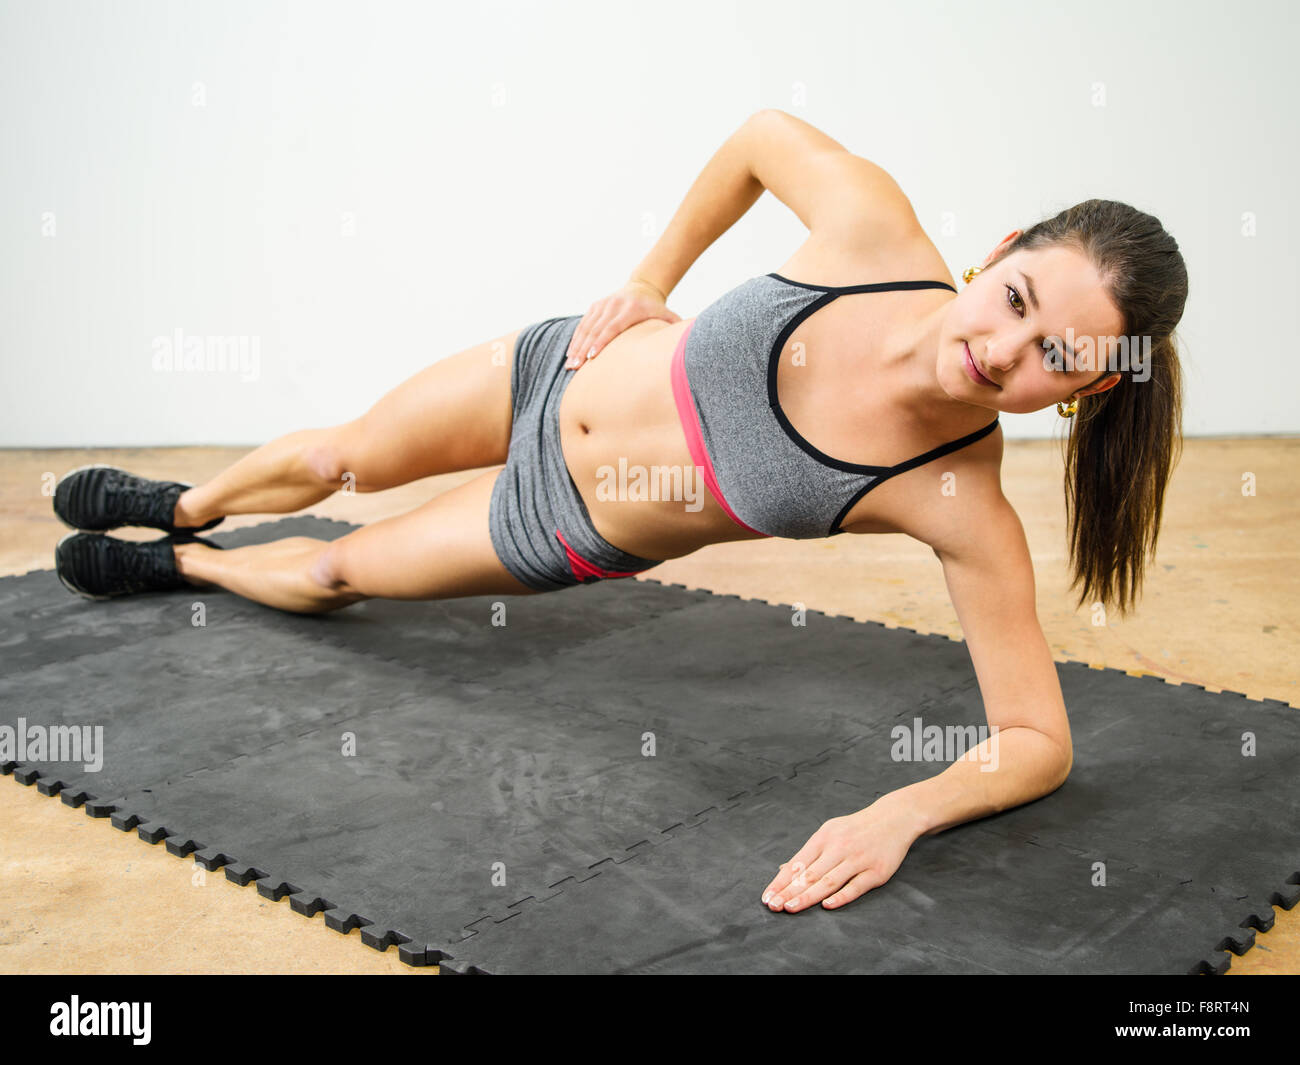 Photo of a young woman in her twenties doing a side elbow plank. - Stock Image